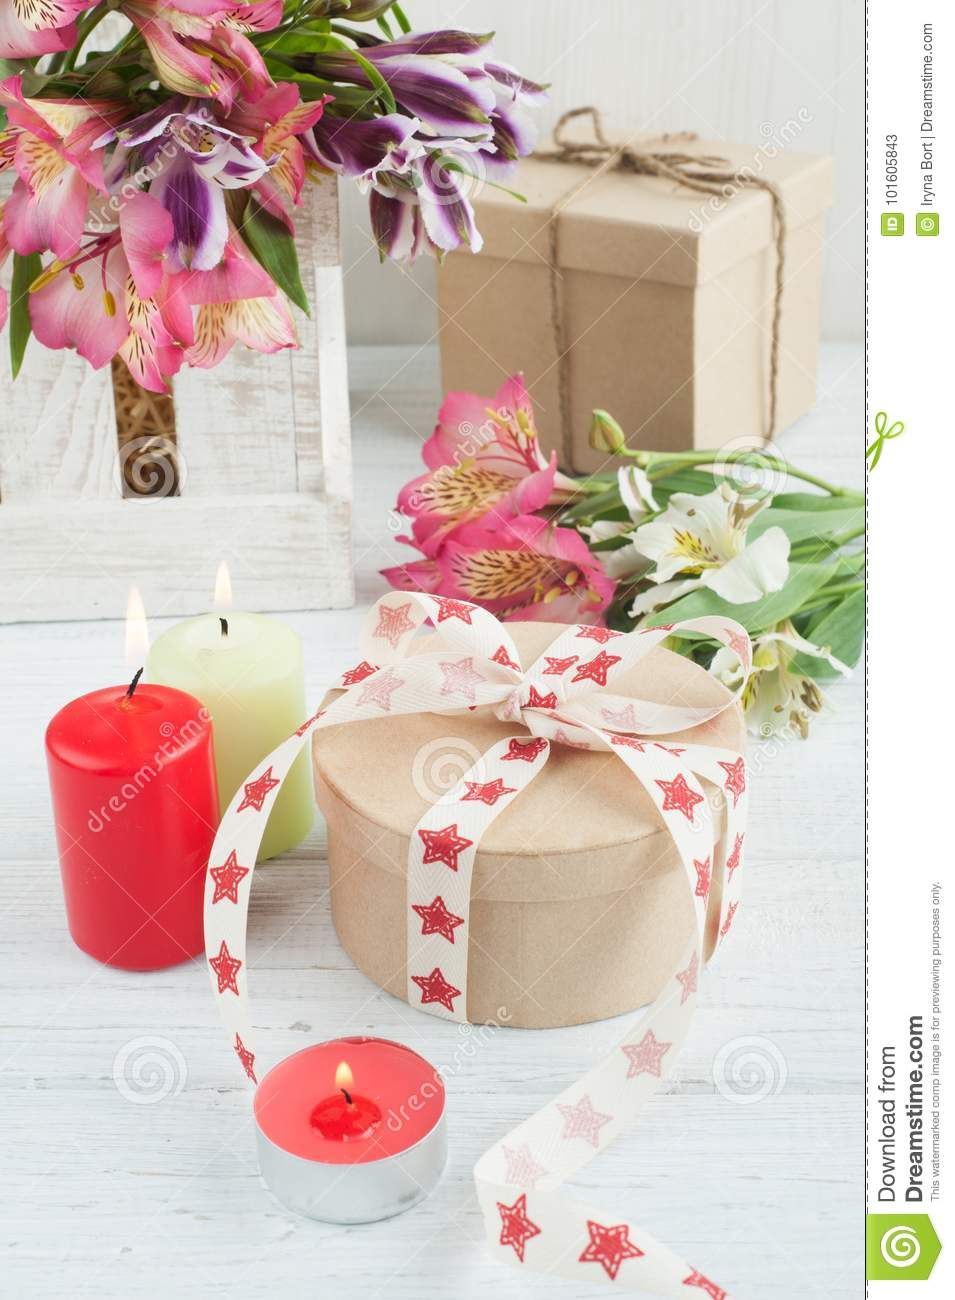 alstromeria flowers in the wooden box lit candle stock image